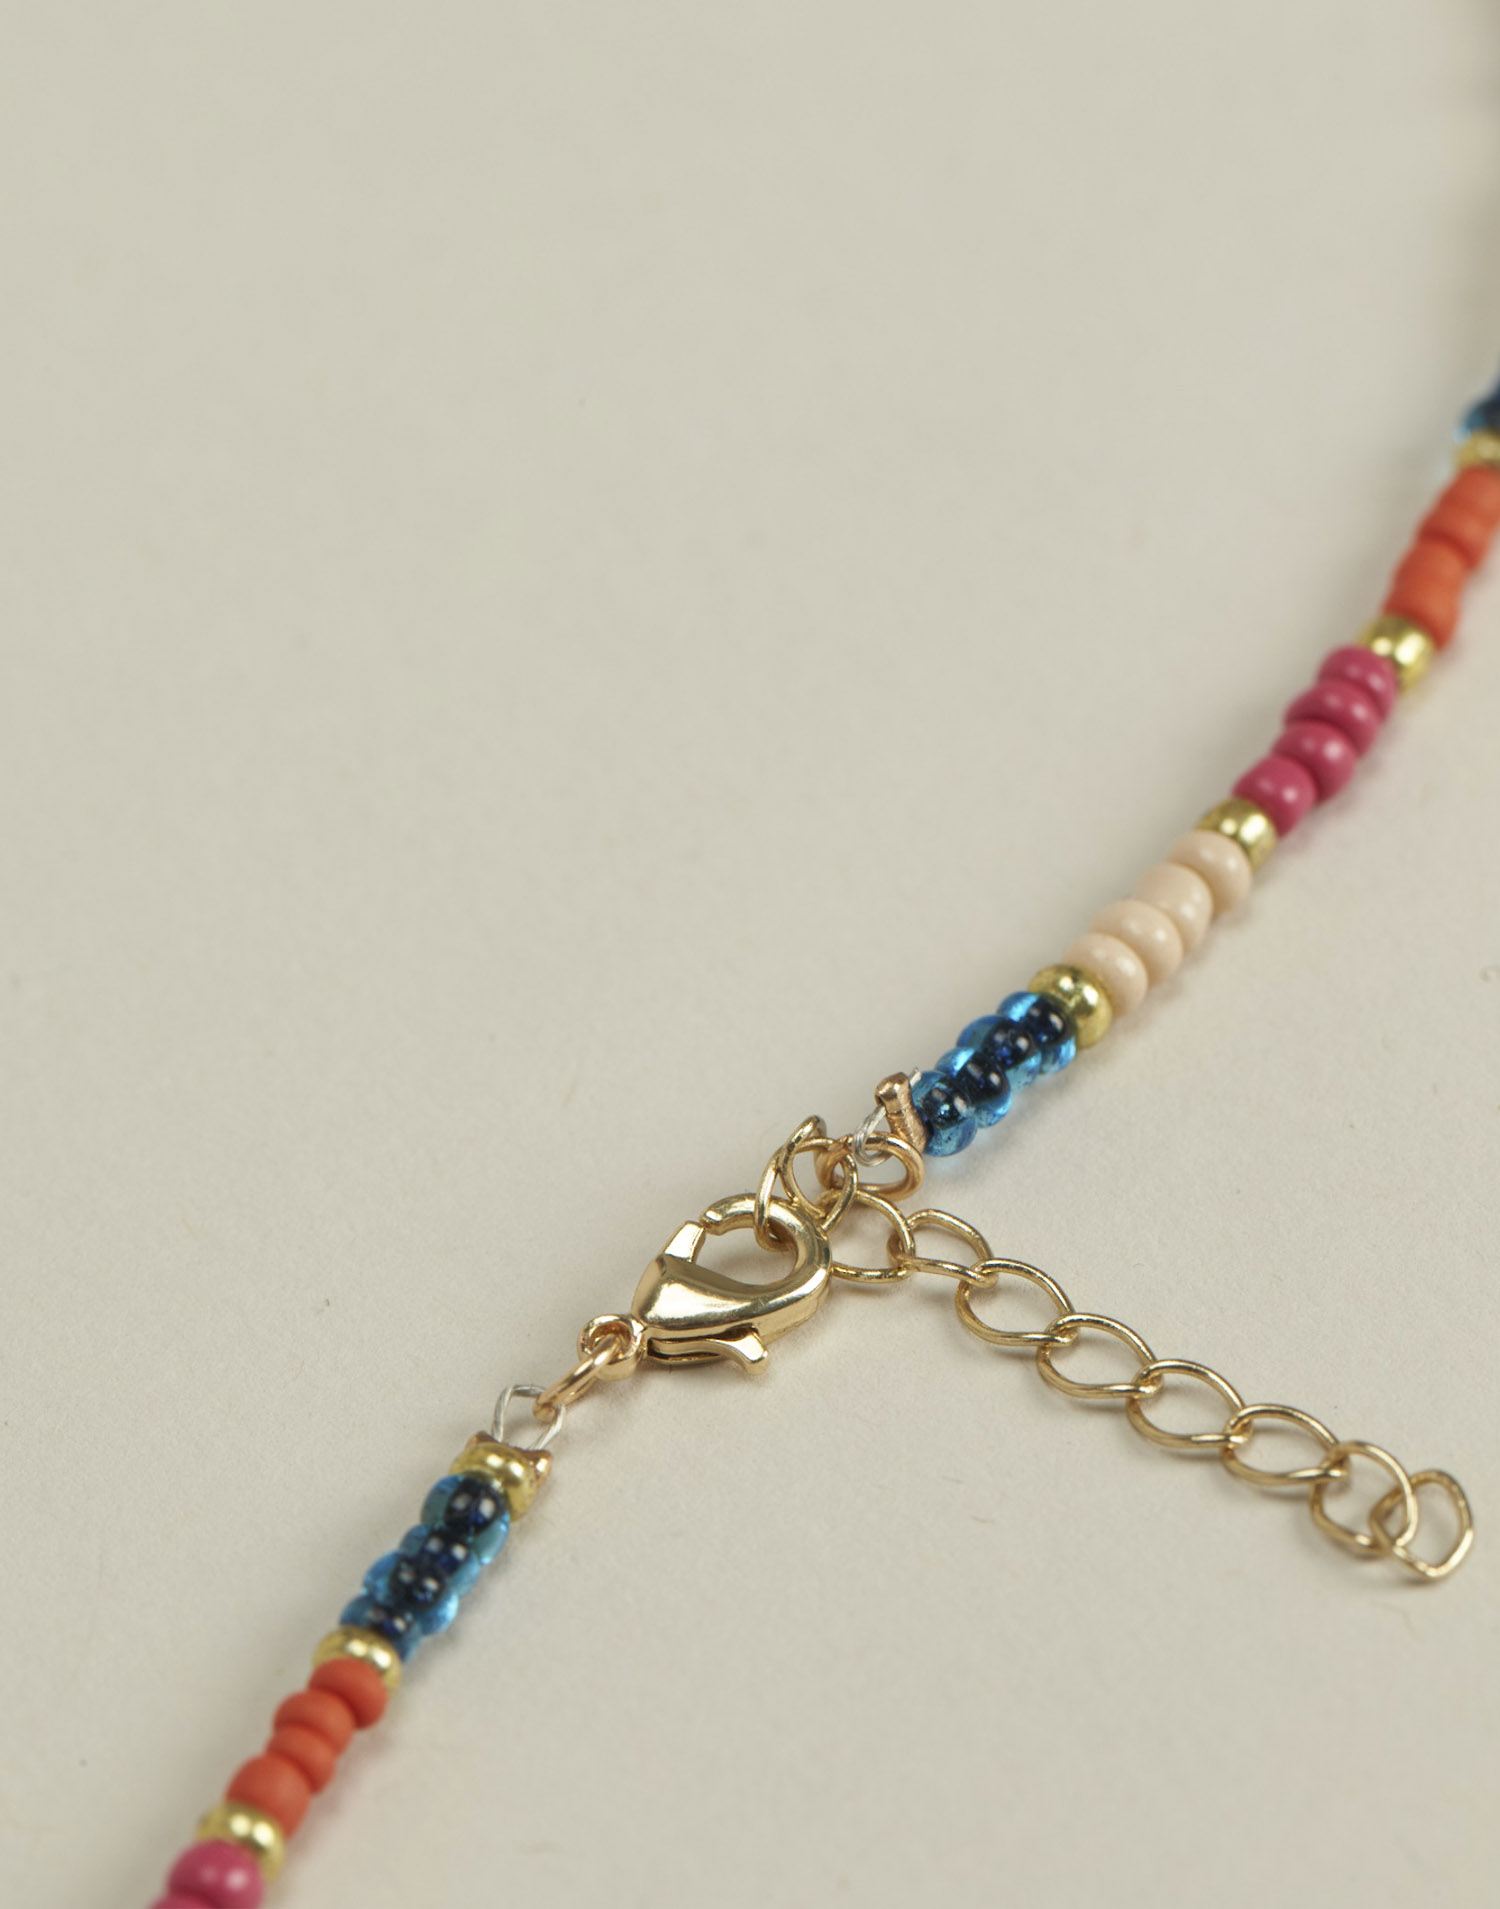 Multicolored bead long necklace